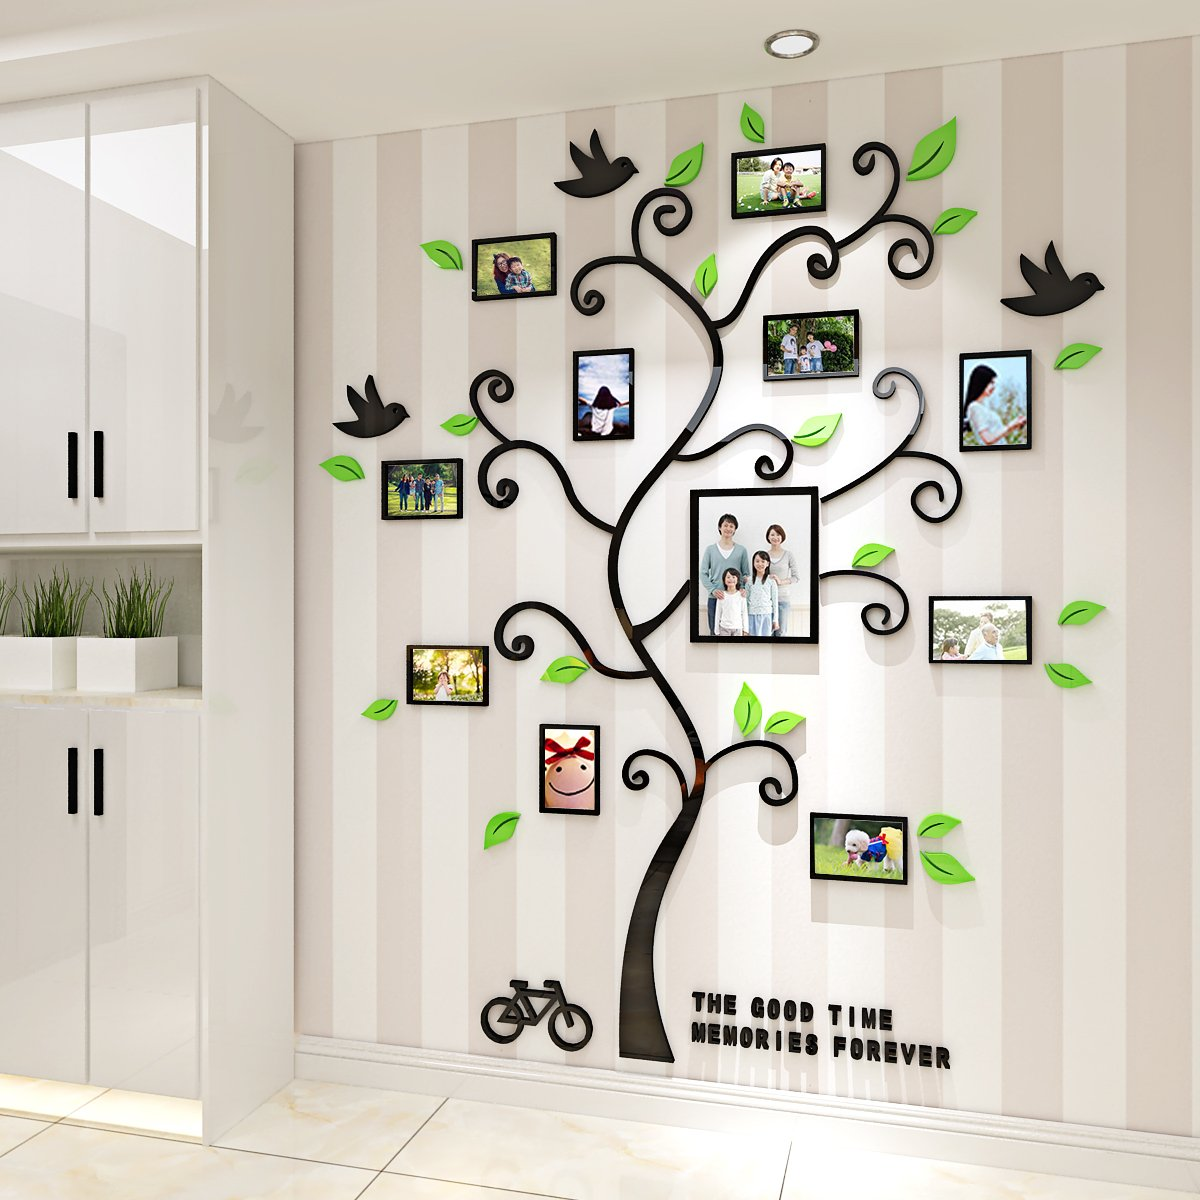 Alicemall Tree Wall Stickers Family Hope Tree of Life Black 3D Wall Decals Photo Frame Acrylic Decorative Wall Sticker Wall Art, 57 x 69 inch (Black) by Alicemall (Image #4)